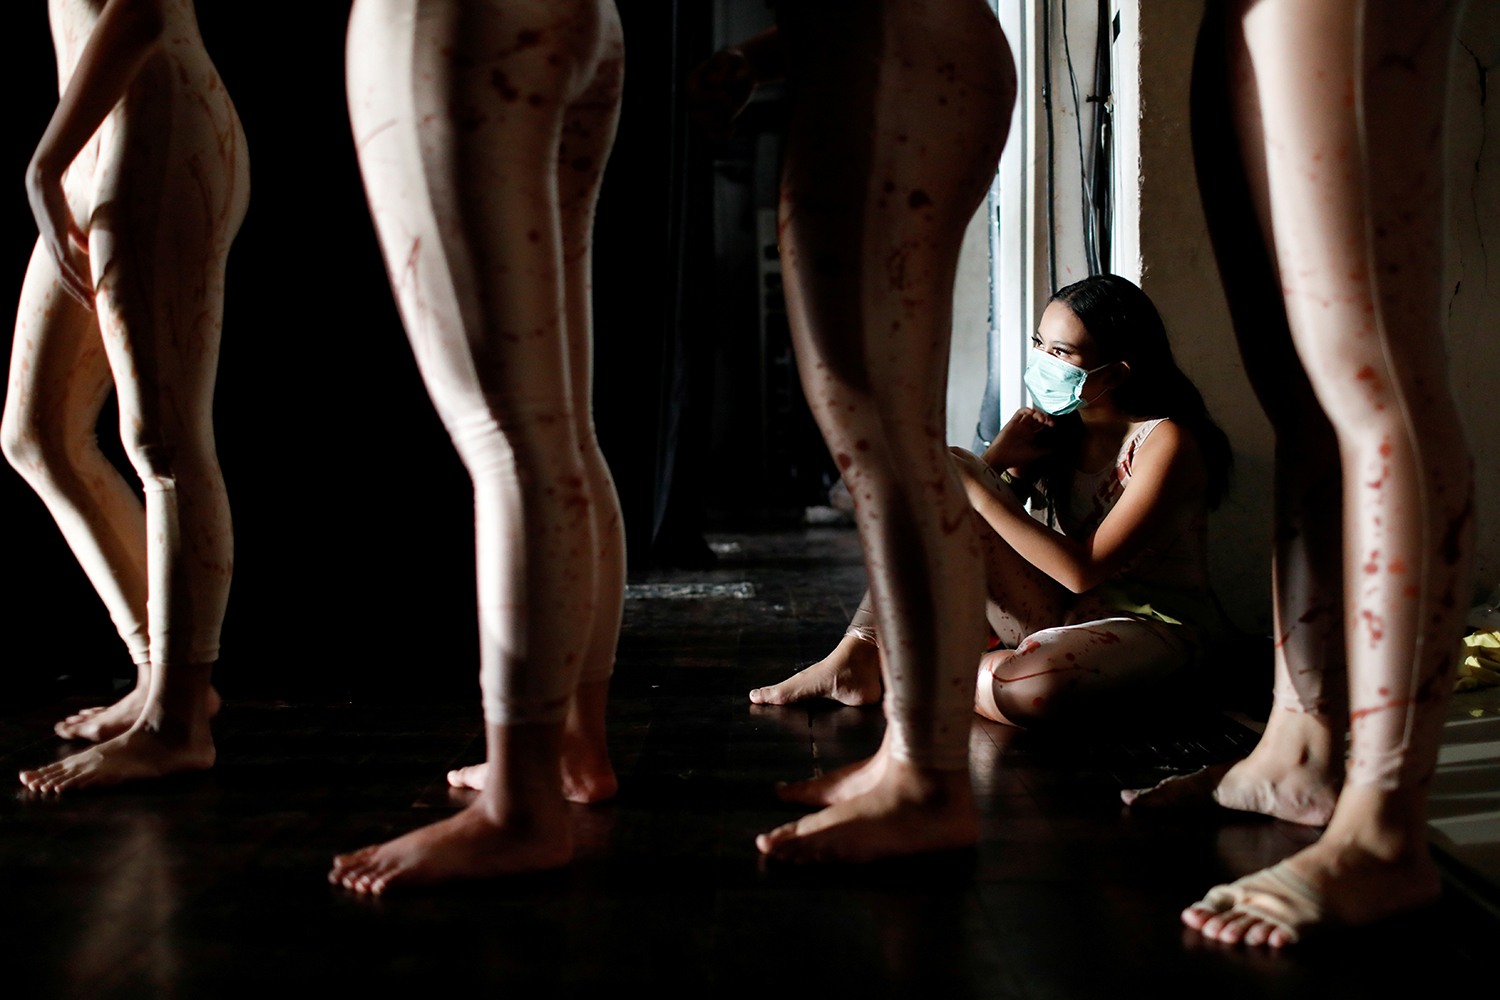 A dancer sits during before a performance at the Jakarta Art Building in Indonesia on Feb. 21. Willy Kurniawan/REUTERS